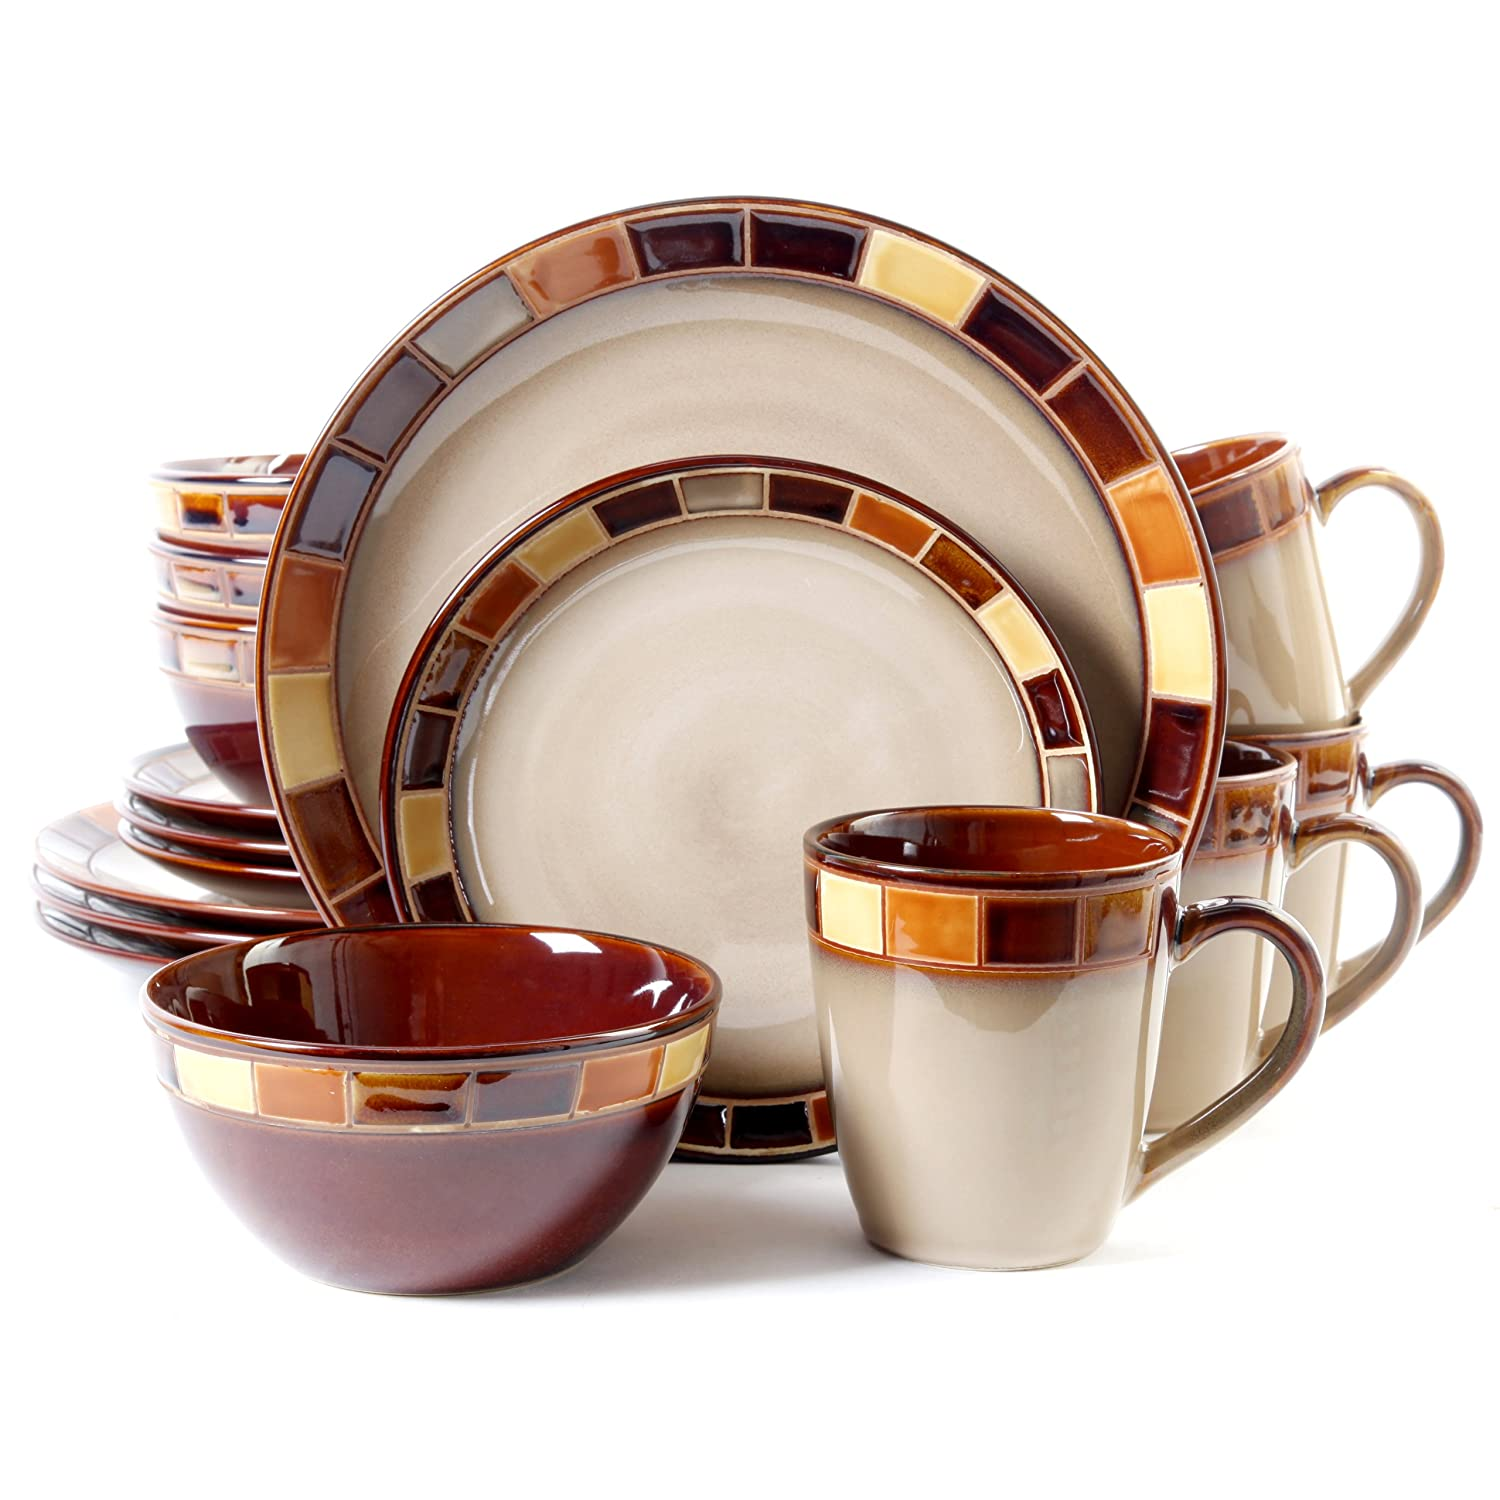 Amazon.com | Gibson Casa Estebana 16-piece Dinnerware Set Service for 4 Beige and Brown Dinnerware Sets  sc 1 st  Amazon.com & Amazon.com | Gibson Casa Estebana 16-piece Dinnerware Set Service ...